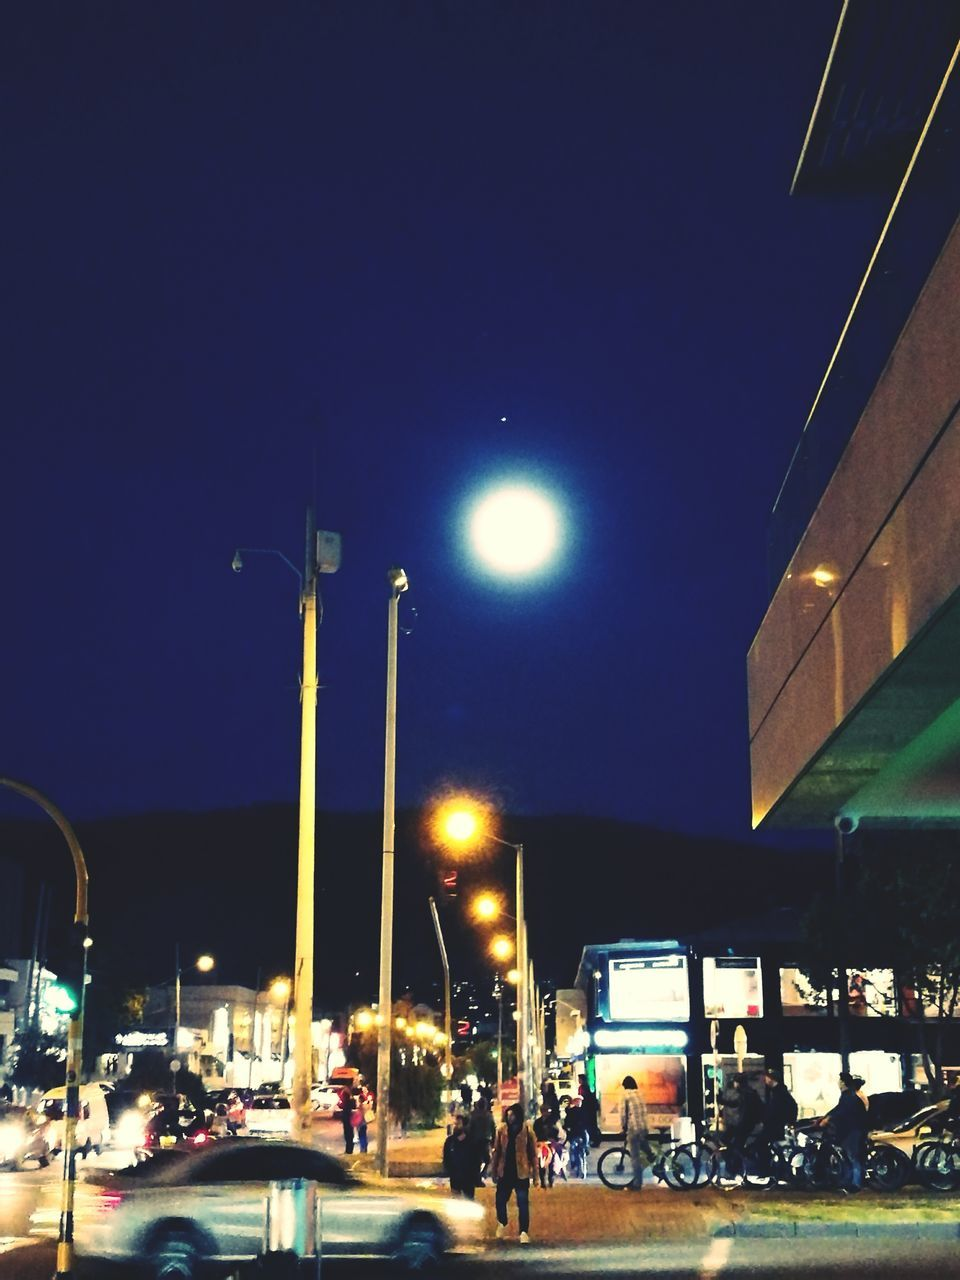 night, illuminated, transportation, street light, mode of transport, car, land vehicle, built structure, outdoors, sky, building exterior, architecture, moon, road, clear sky, city, no people